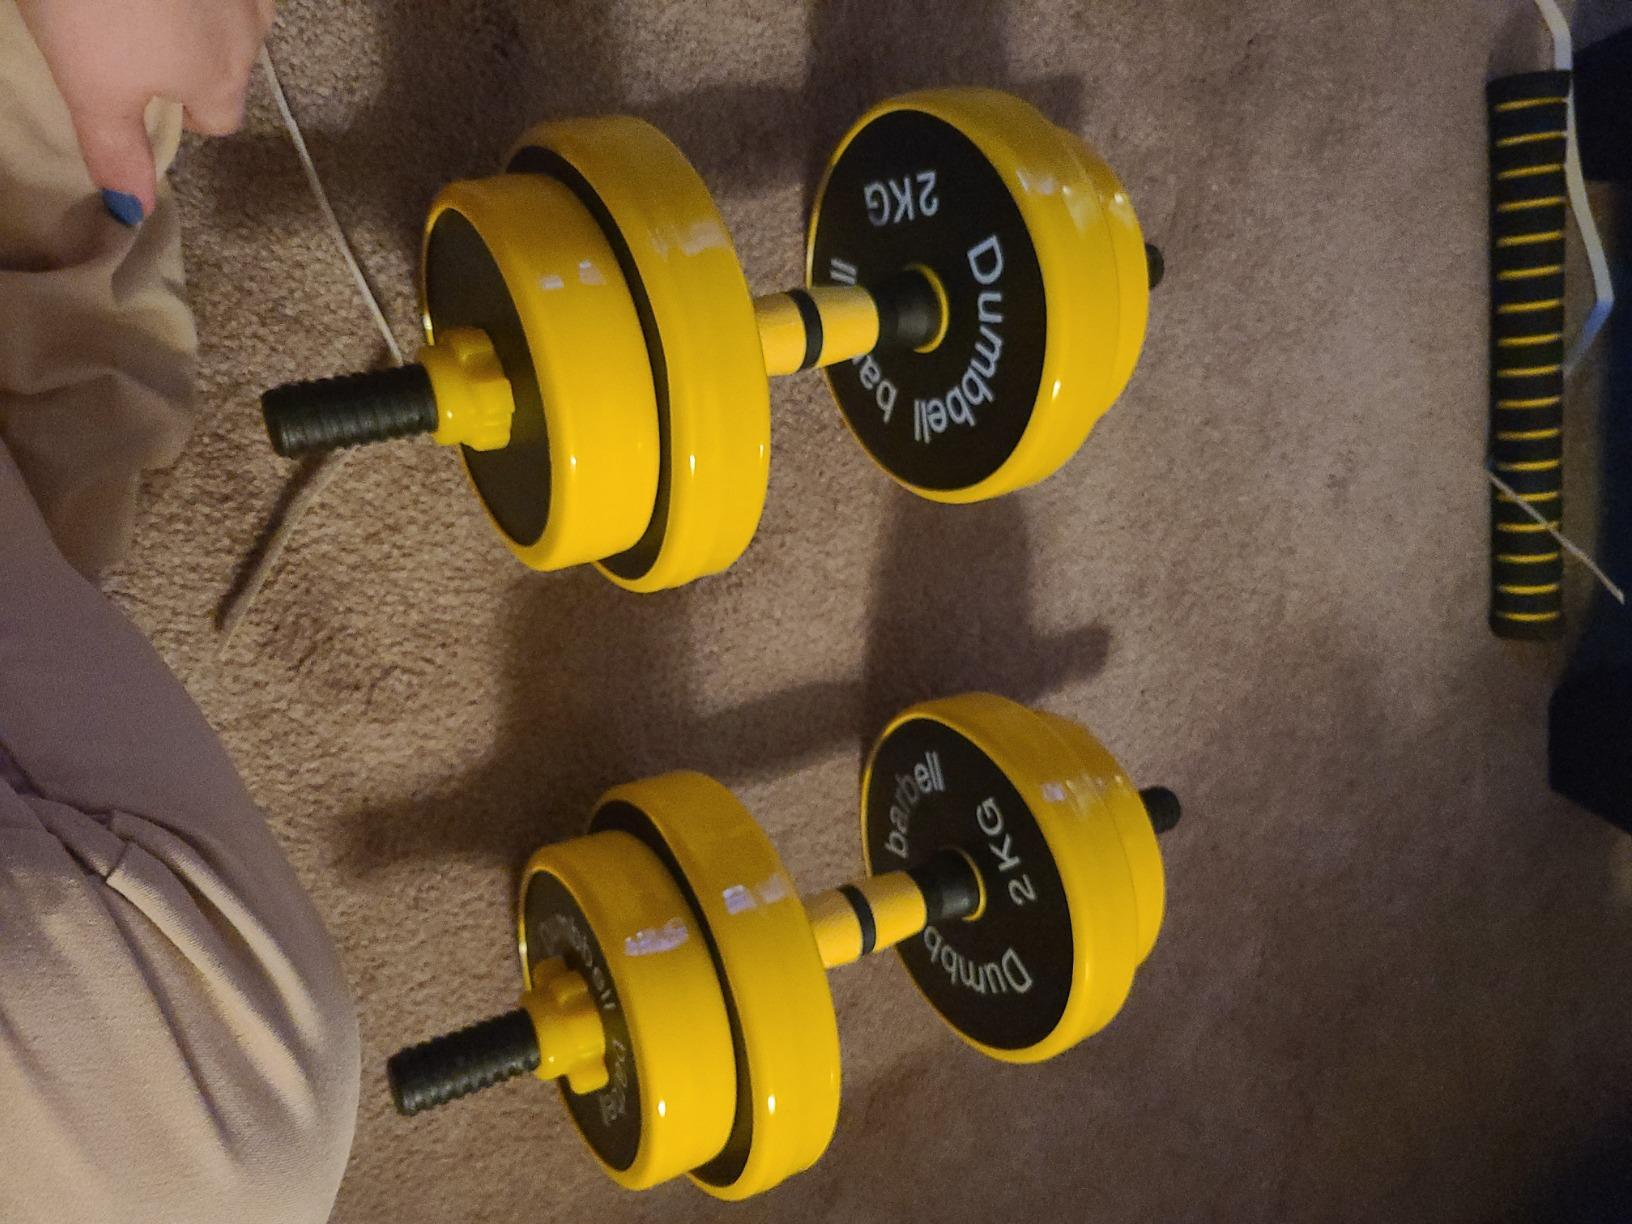 Nice C Adjustable Dumbbell Set Barbell Weight Pair , Free Weights 2-in-1 Set, Non-Slip Neoprene Hand, All-Purpose, Home, Gym, Office photo review